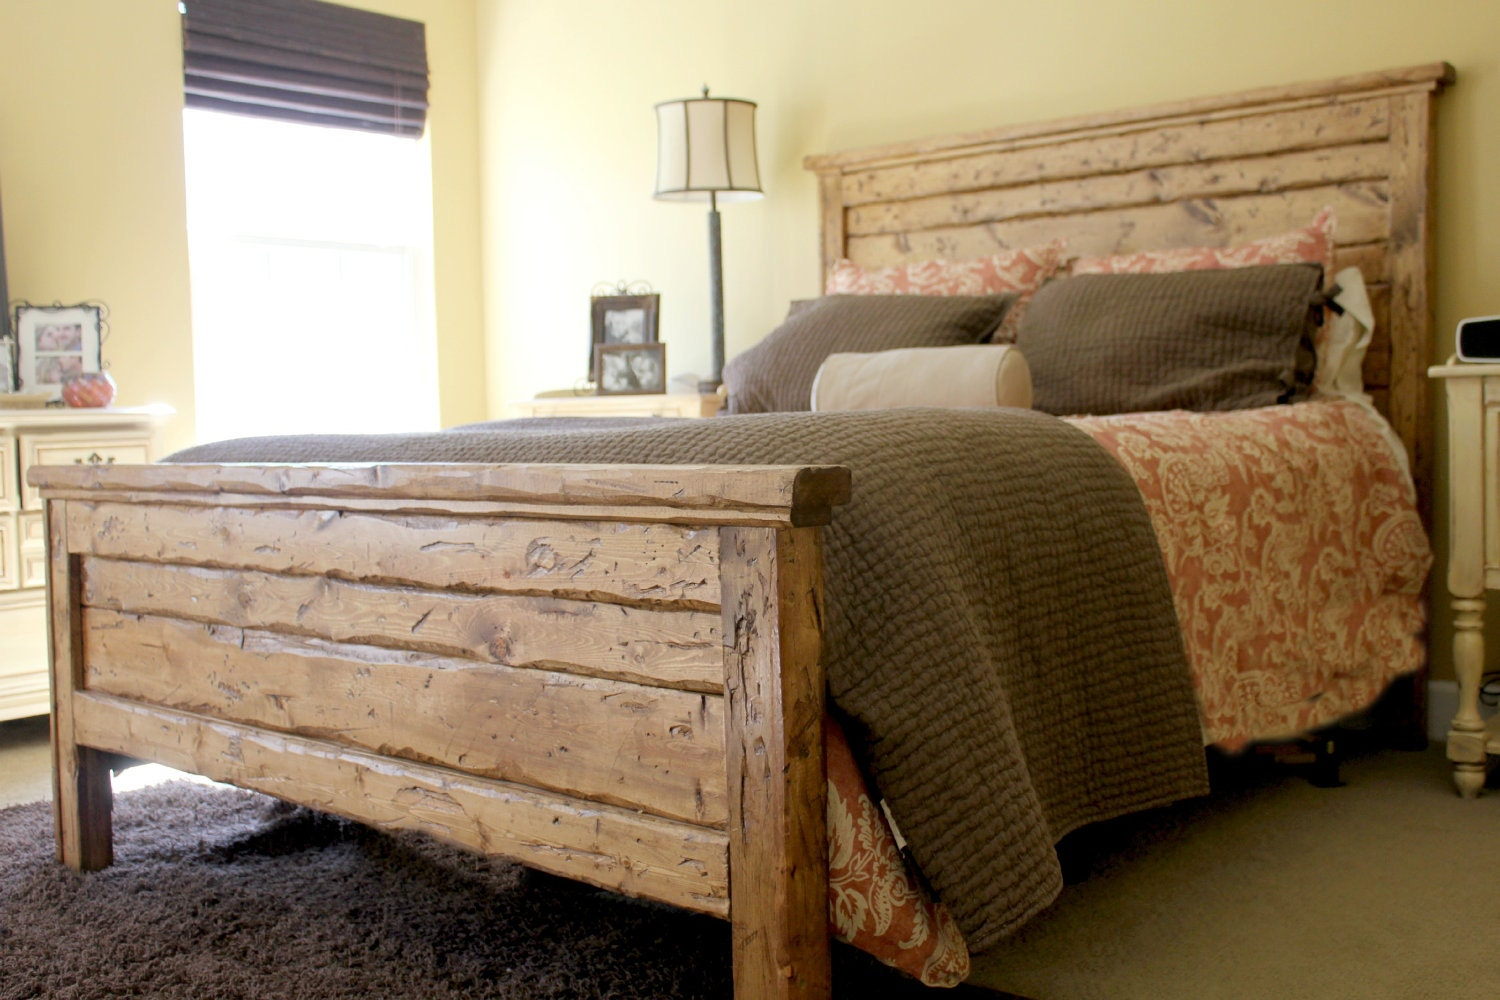 King Reclaimed Wood Headboard And Footbaord